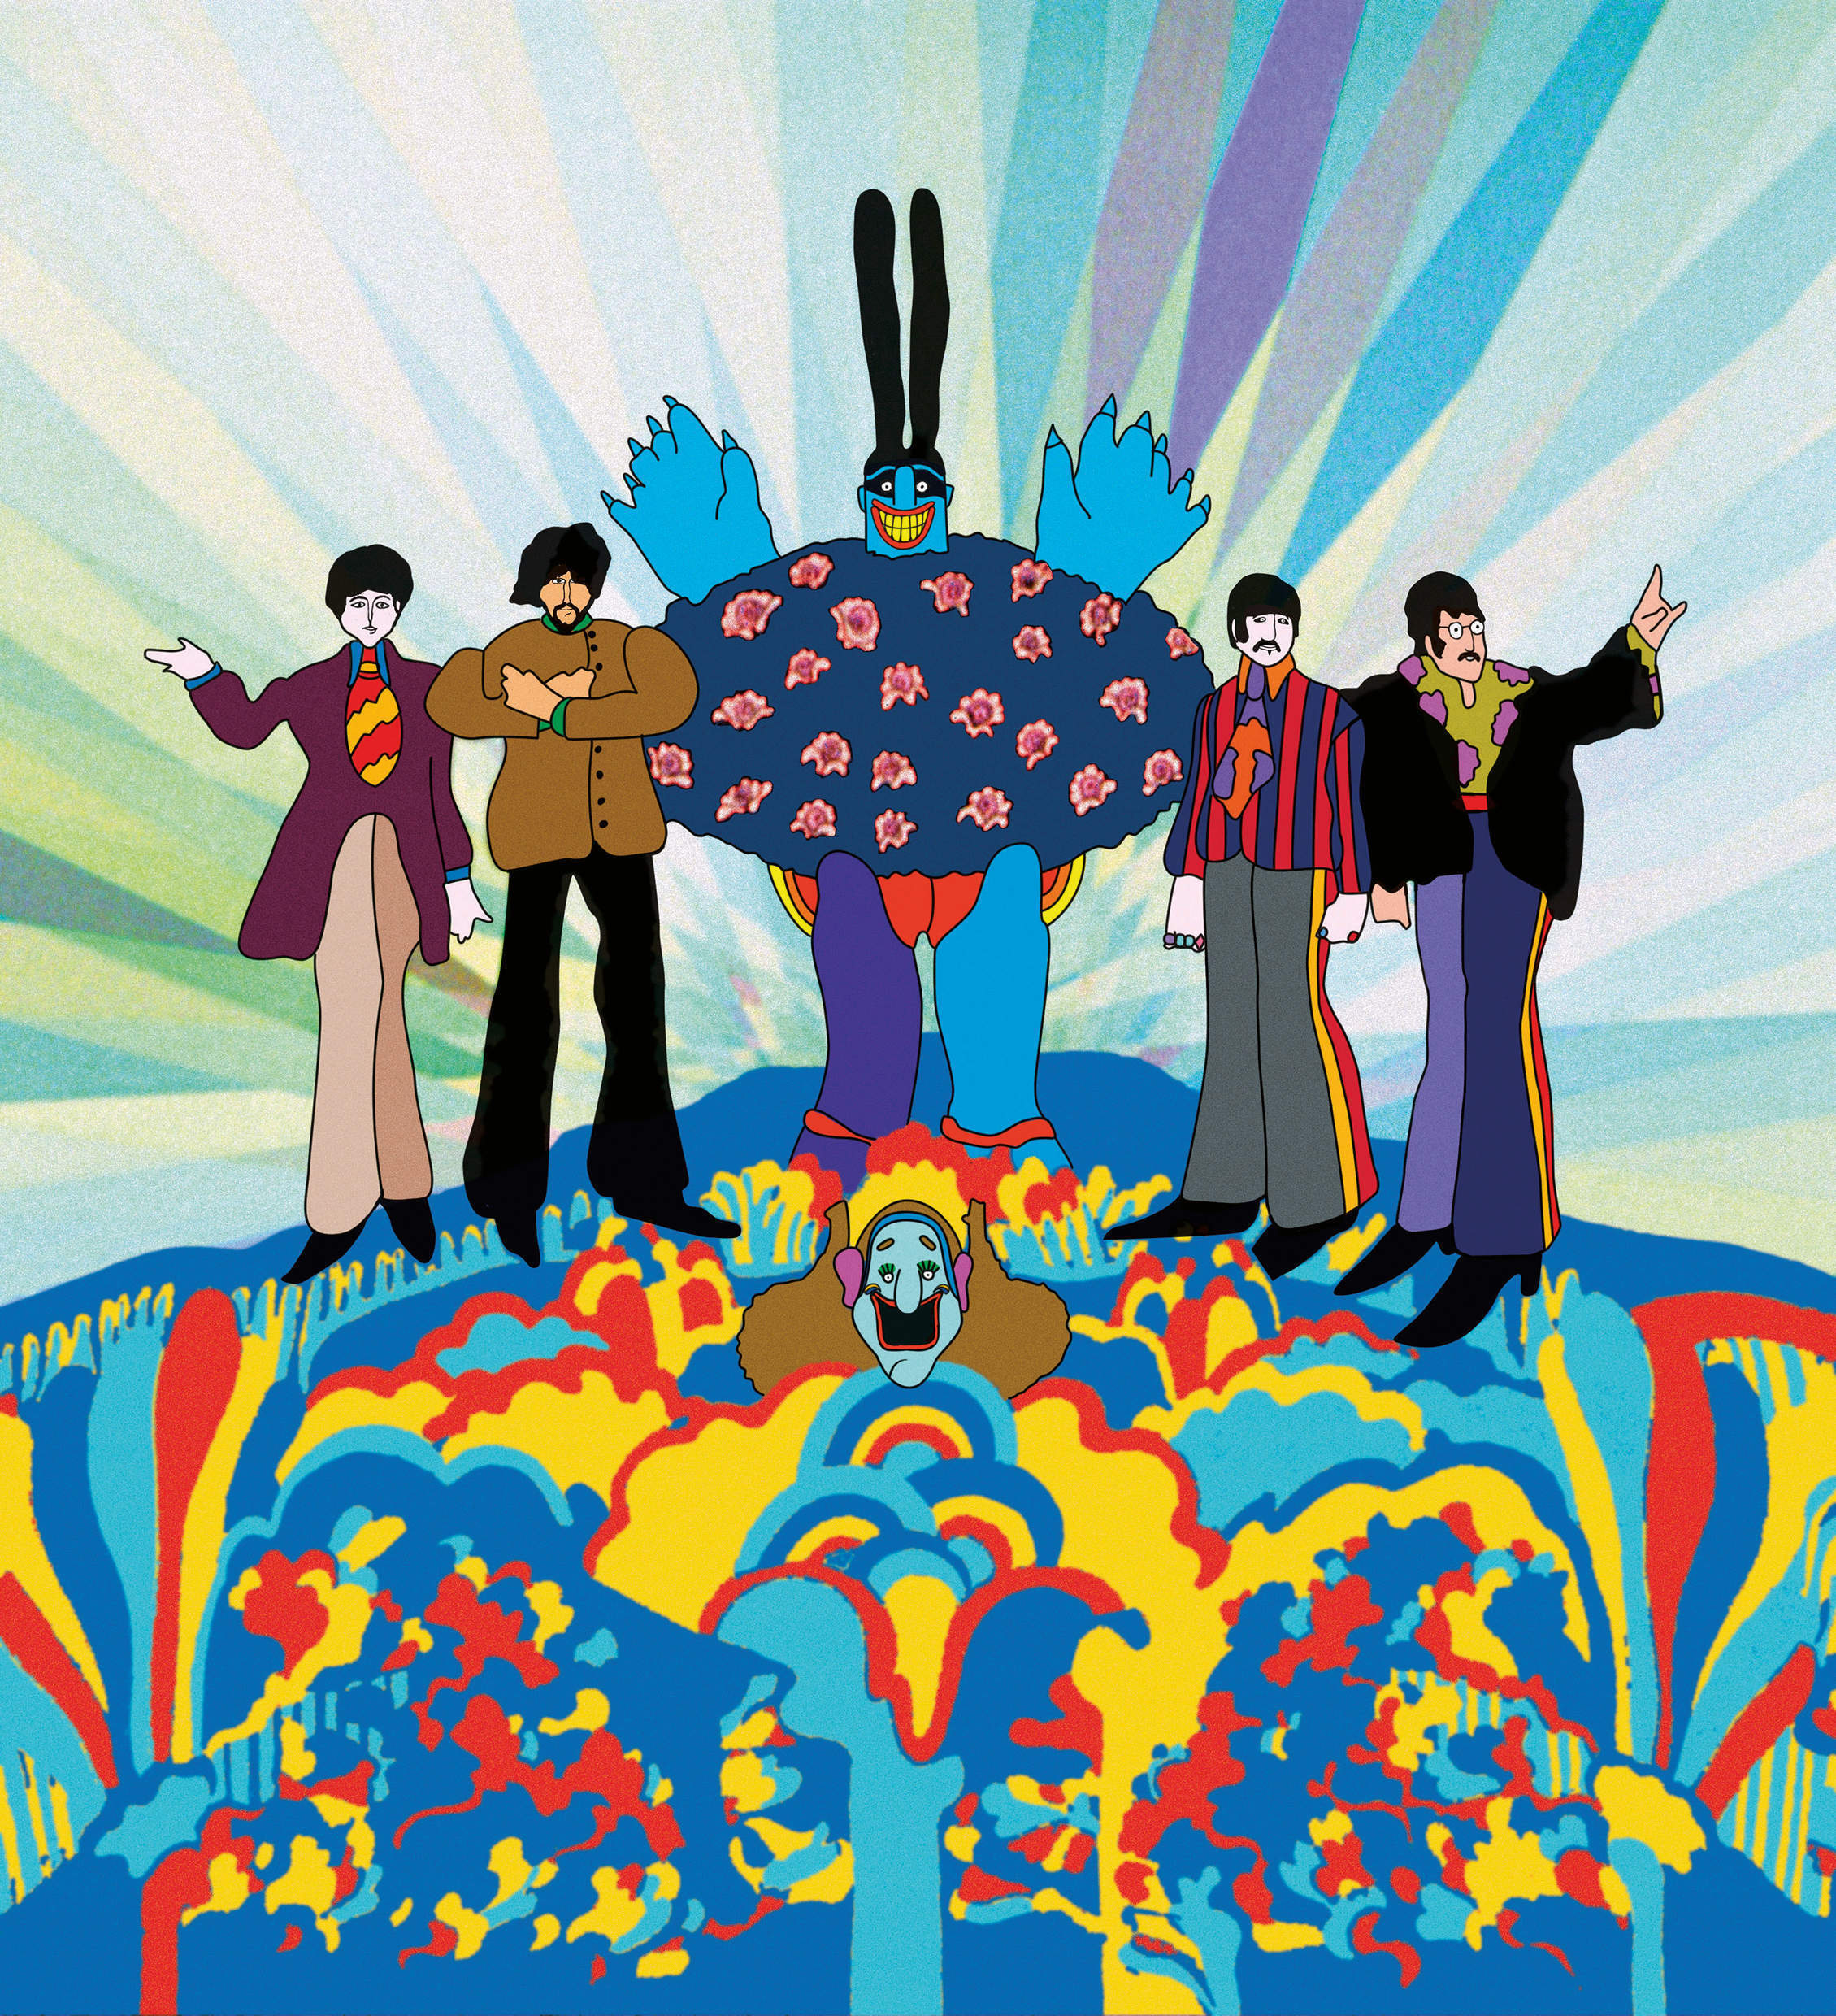 50 years on, the Beatles film Yellow Submarine tells the story of the Sixties